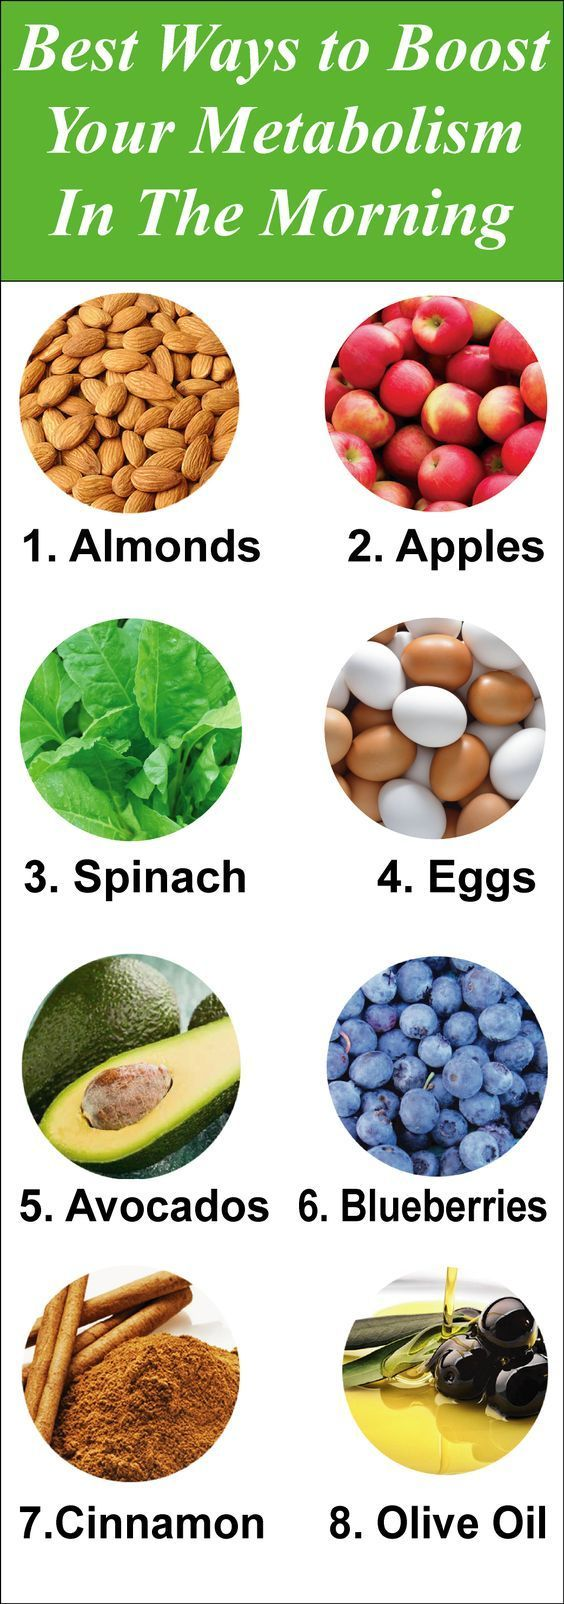 Morning Metabolism Boosting Foods. Learn about the metabolism boosting benefits of Formula 1 adaptogen extract. Designed from over 2 billion dollars of Russian science on adaptogenic botanicals; the herbal superfood blend helps your body defend against stress by boosting the immune system, improving sleep, increasing energy, improving memory, and enhancing mental focus. Live younger today! #AntiAging #Adaptogenics #Adaptogens #Stress #Management #Reduction #Solutions #Antioxidants #Arthritis